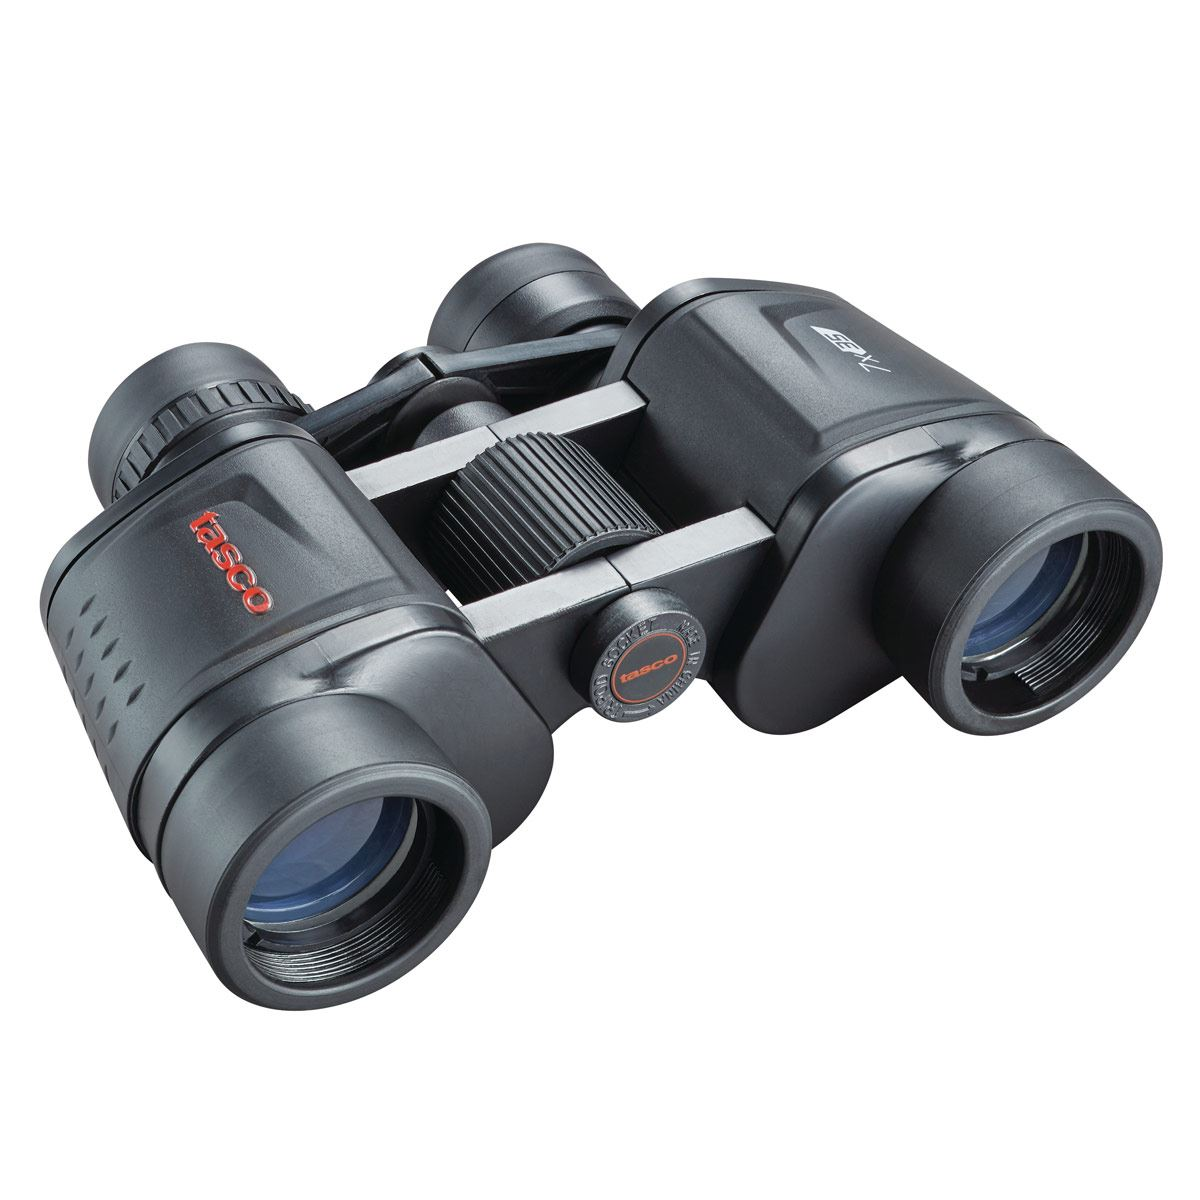 Binocular Tasco 7 x 35 Black Porro Mc